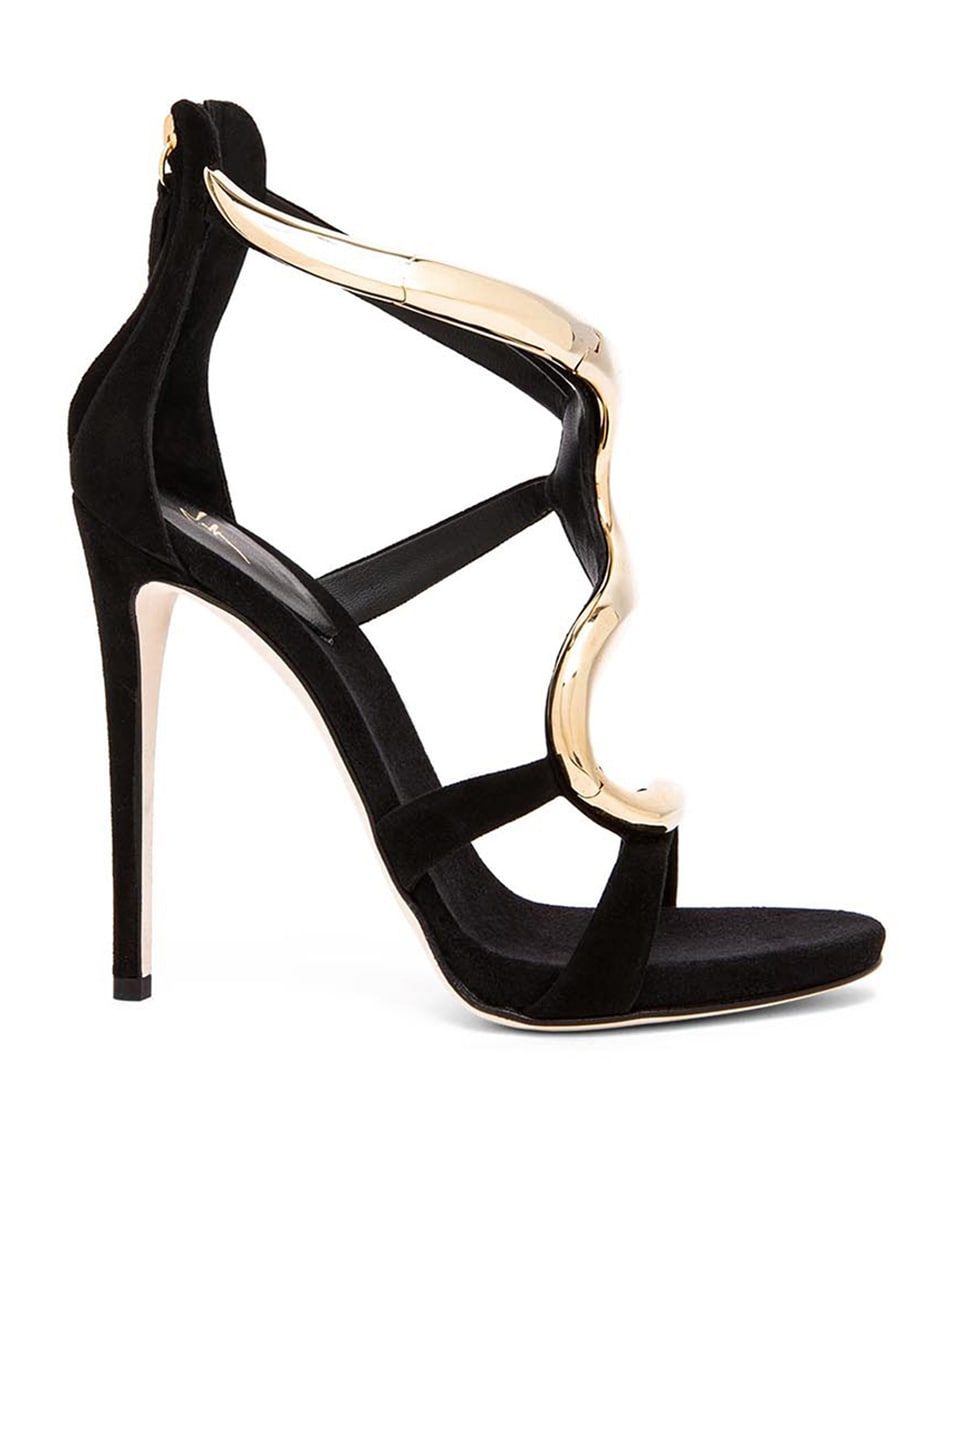 Image 1 of Giuseppe Zanotti Gold Snake Suede Heels in Gold & Black Suede